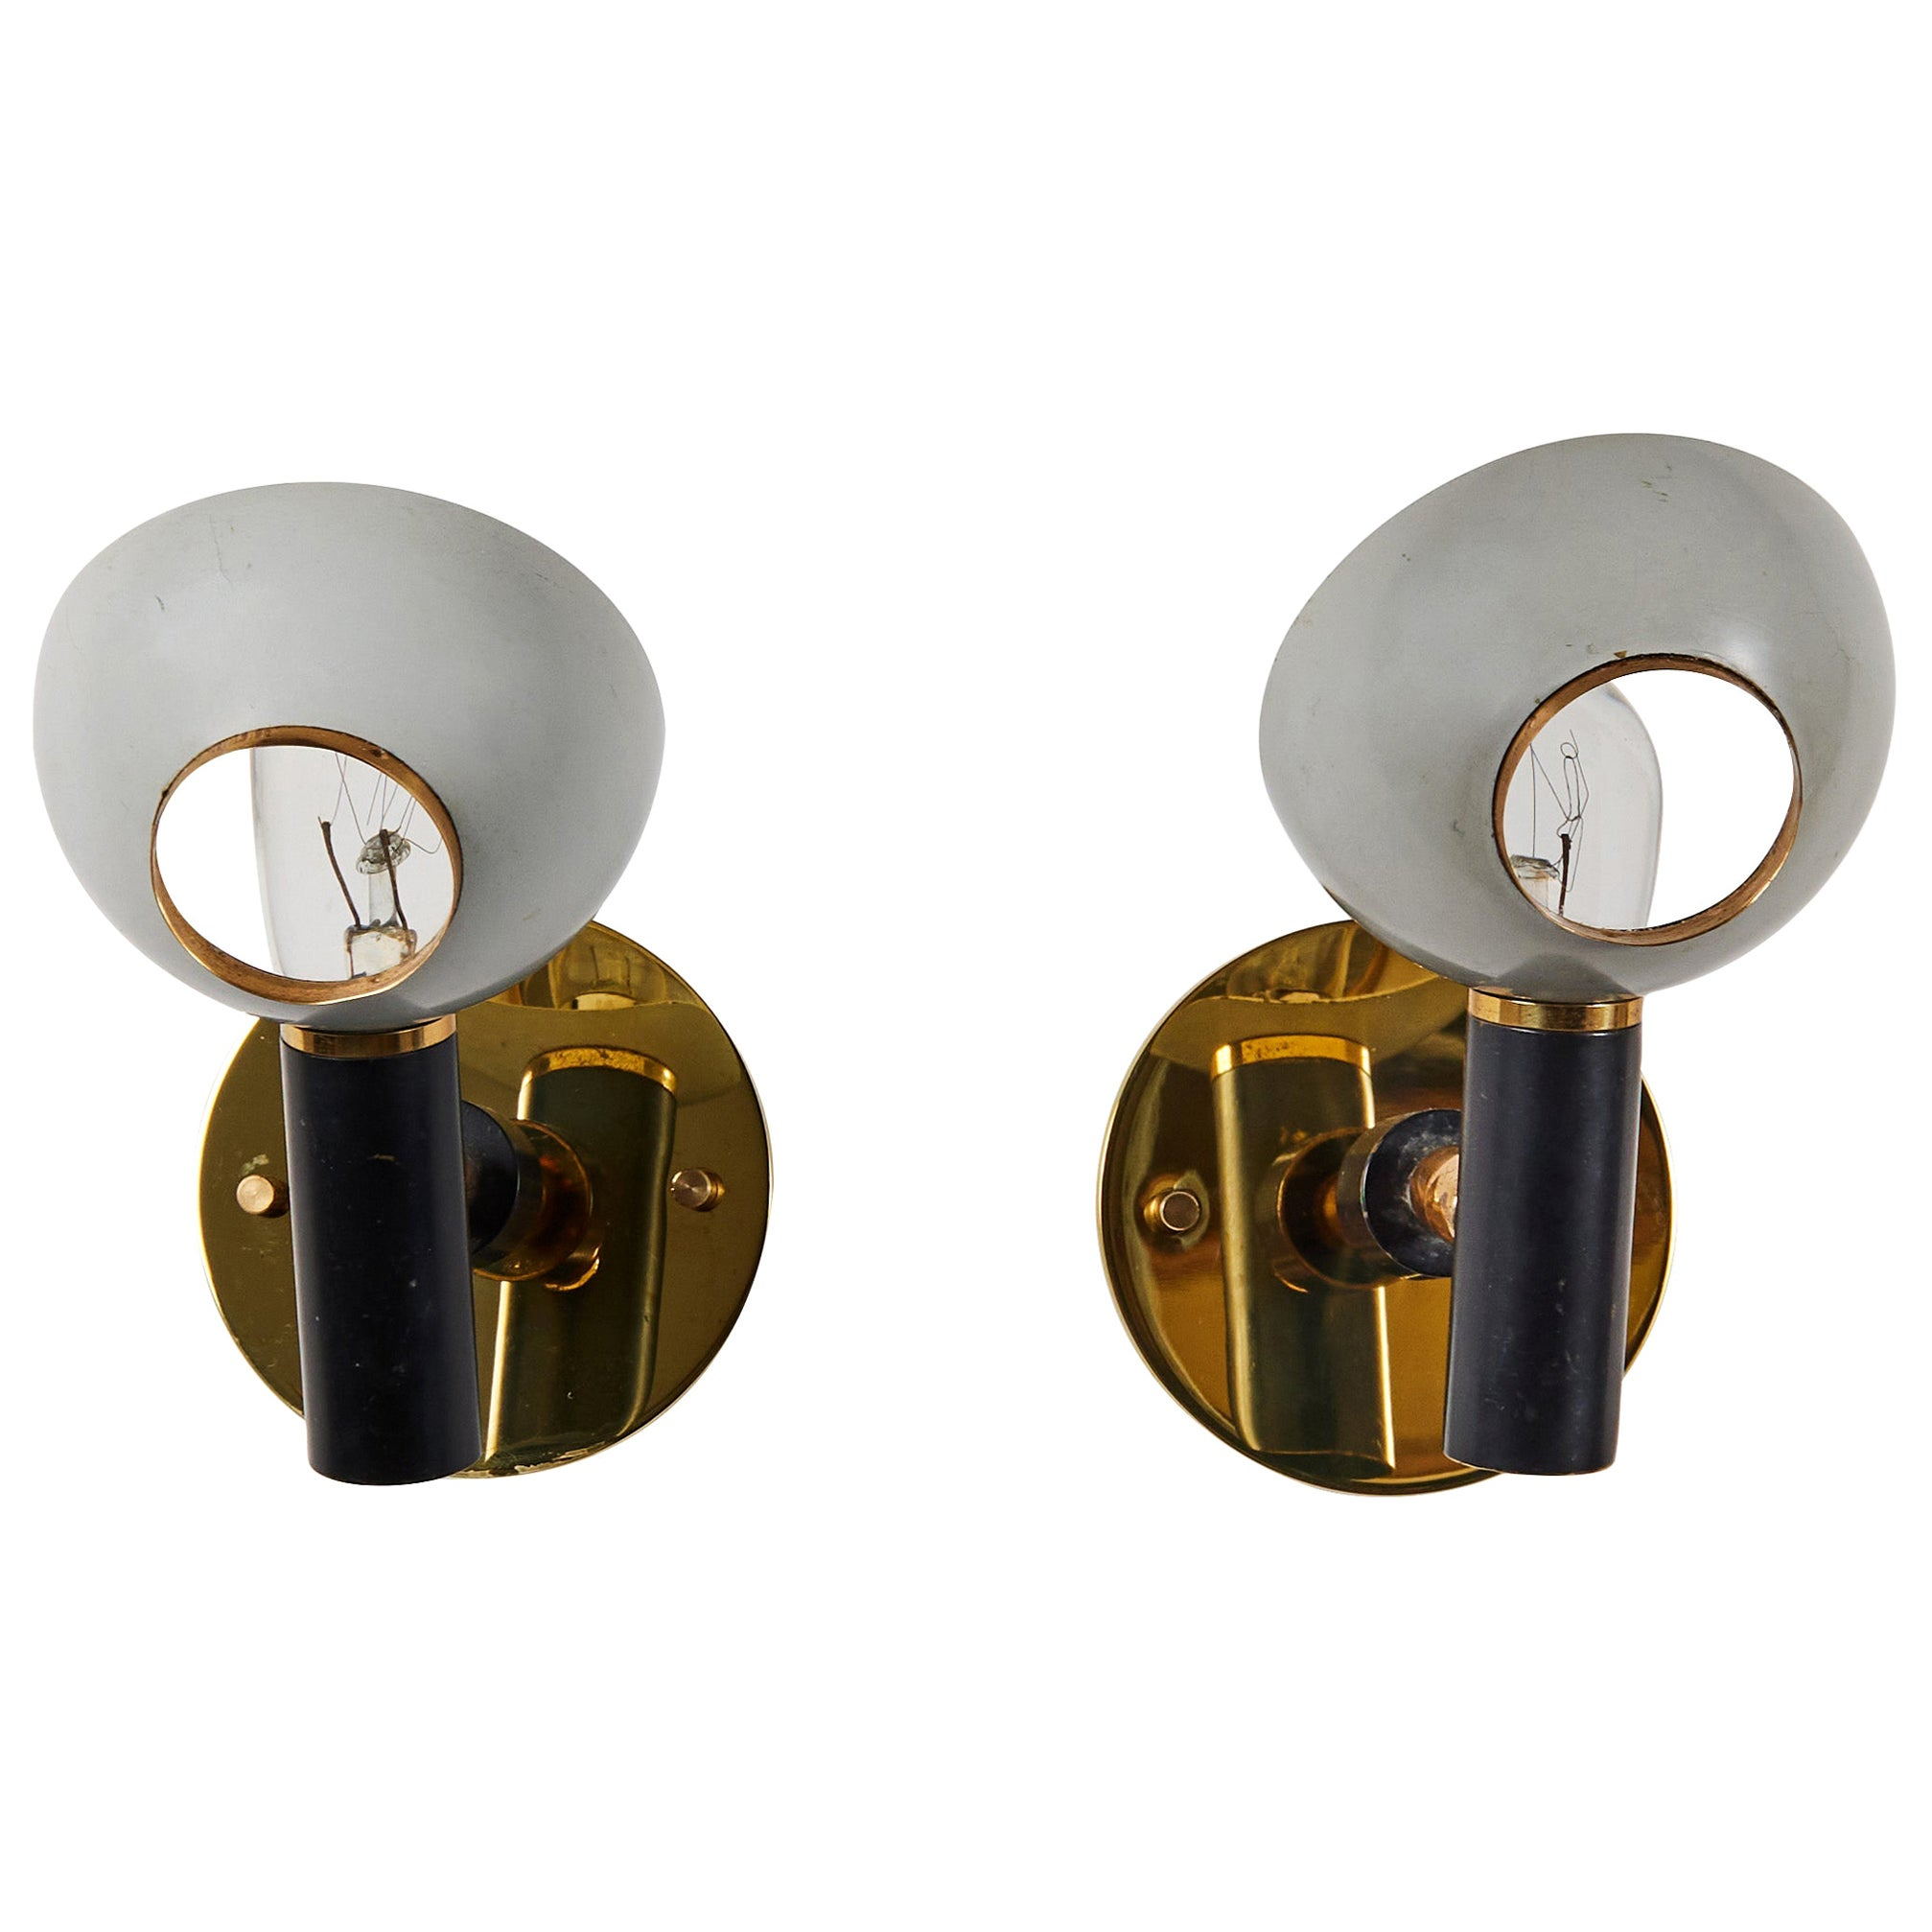 Pair of Sconces by Oscar Torlasco for Lumi